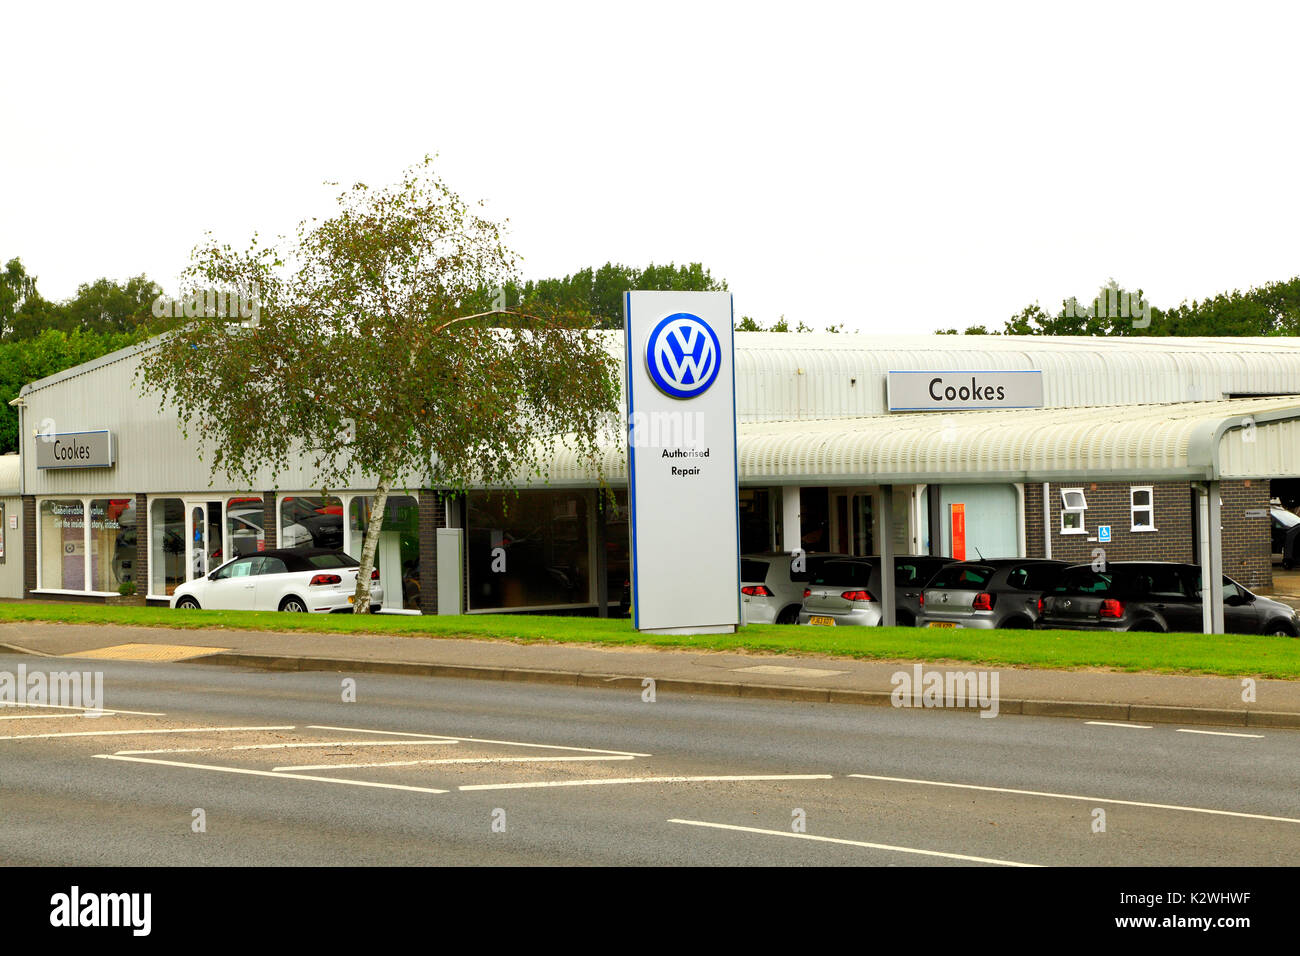 Cookes of Fakenham, VW, Volkswagen Main Dealer, dealers, dealership, Norfolk, England, UK, motor car, cars - Stock Image